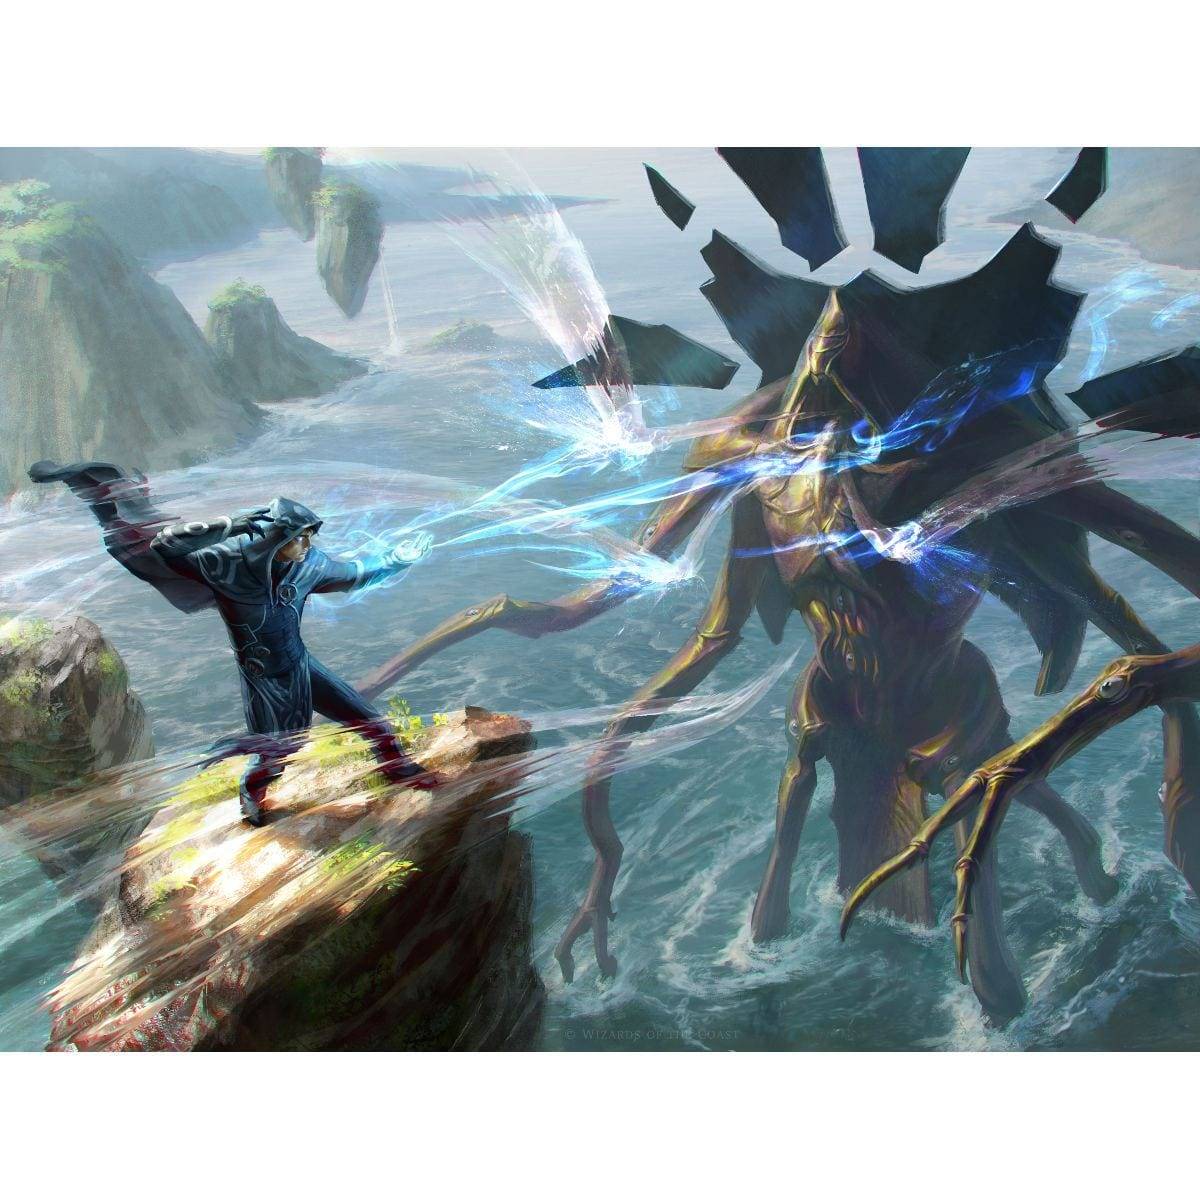 Clash of Wills Print - Print - Original Magic Art - Accessories for Magic the Gathering and other card games